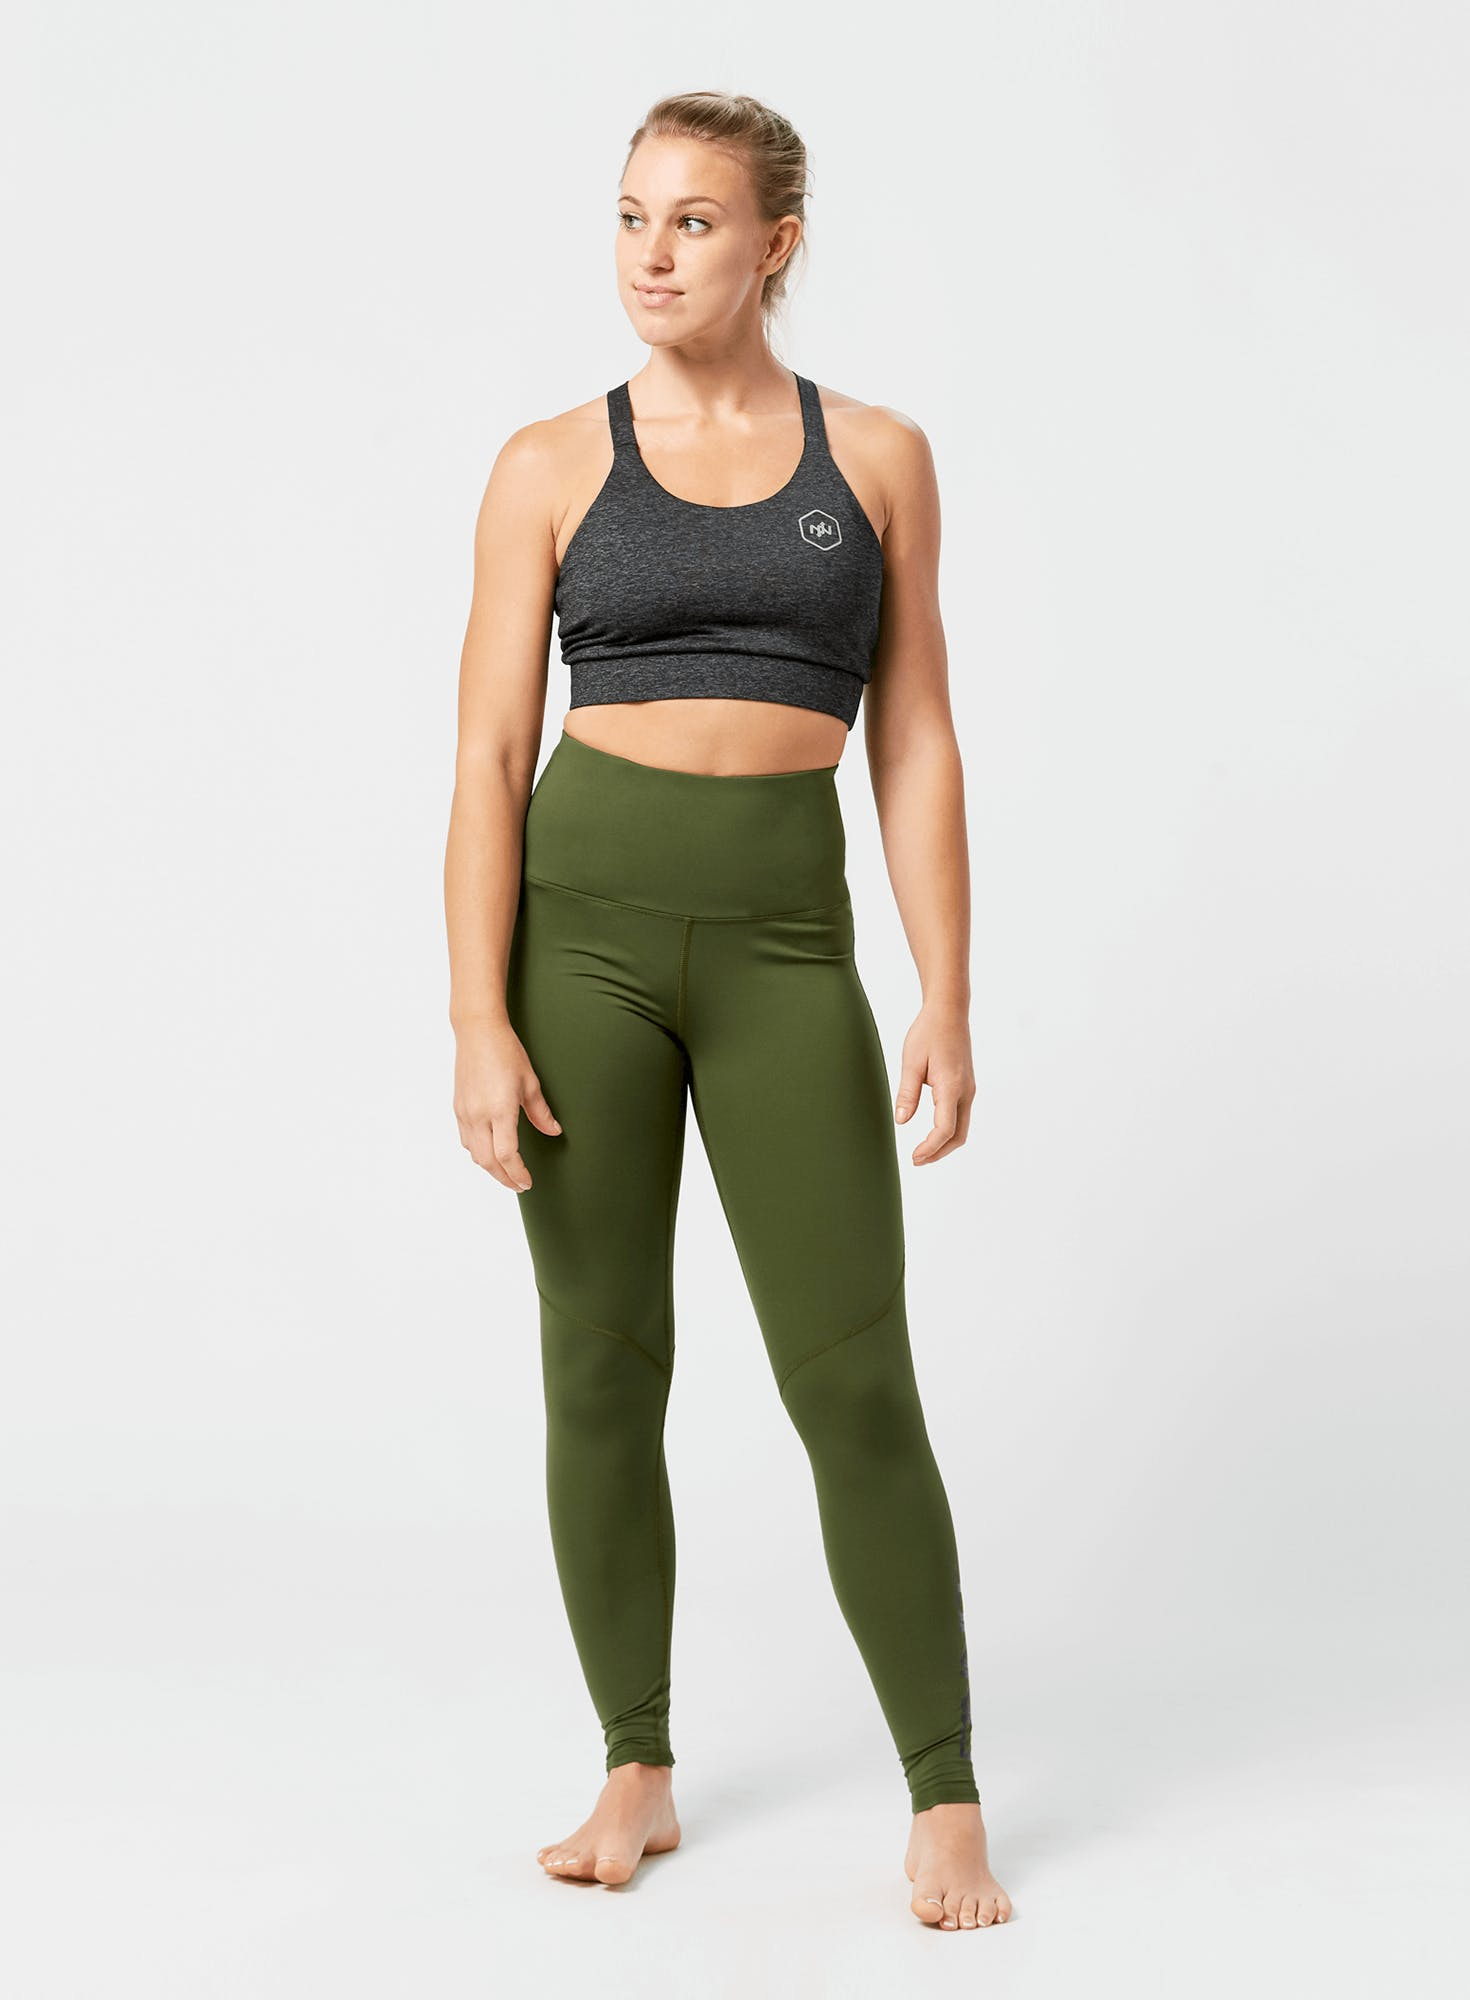 Virus x Onnit Hi-Waist Performance Leggings Bonus Image